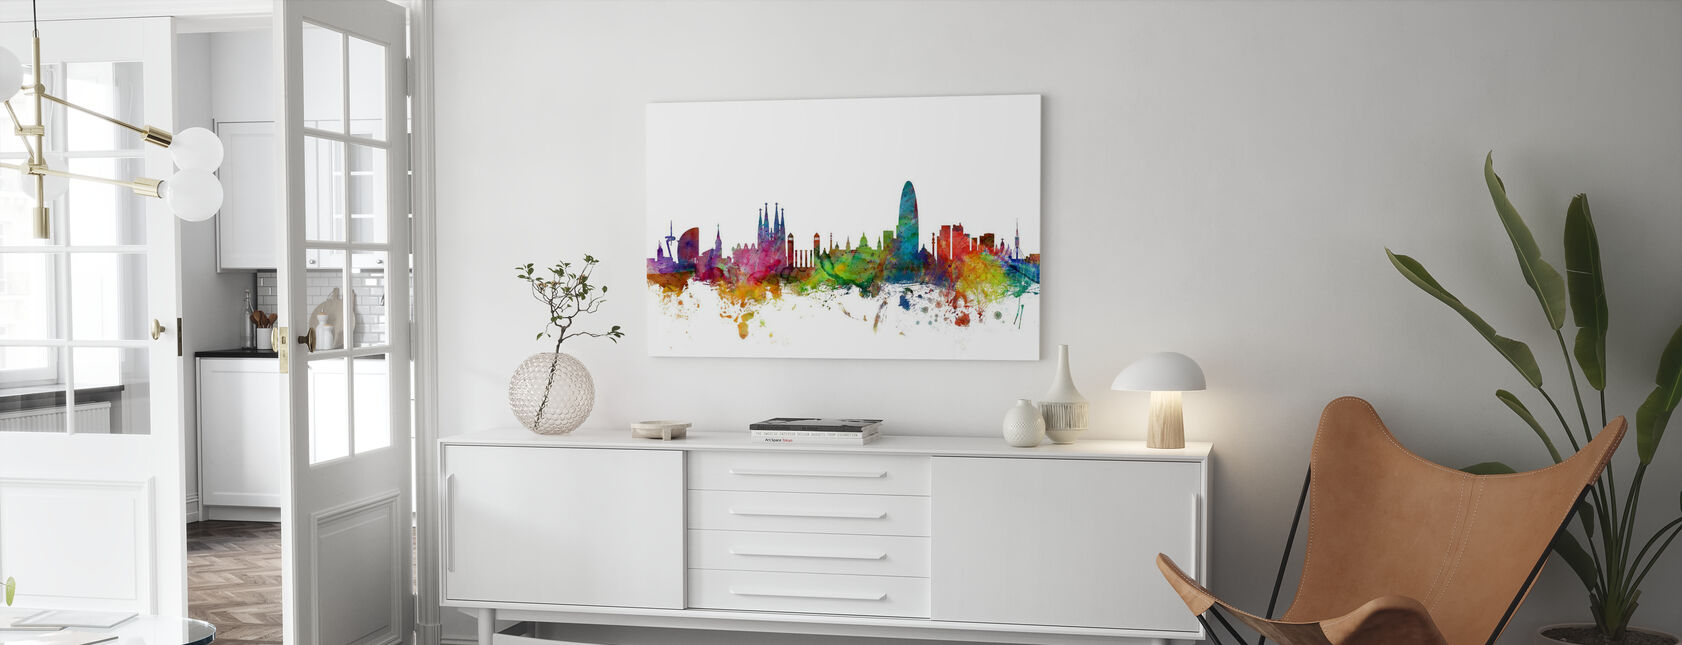 Barcelona Skyline - Canvas print - Living Room